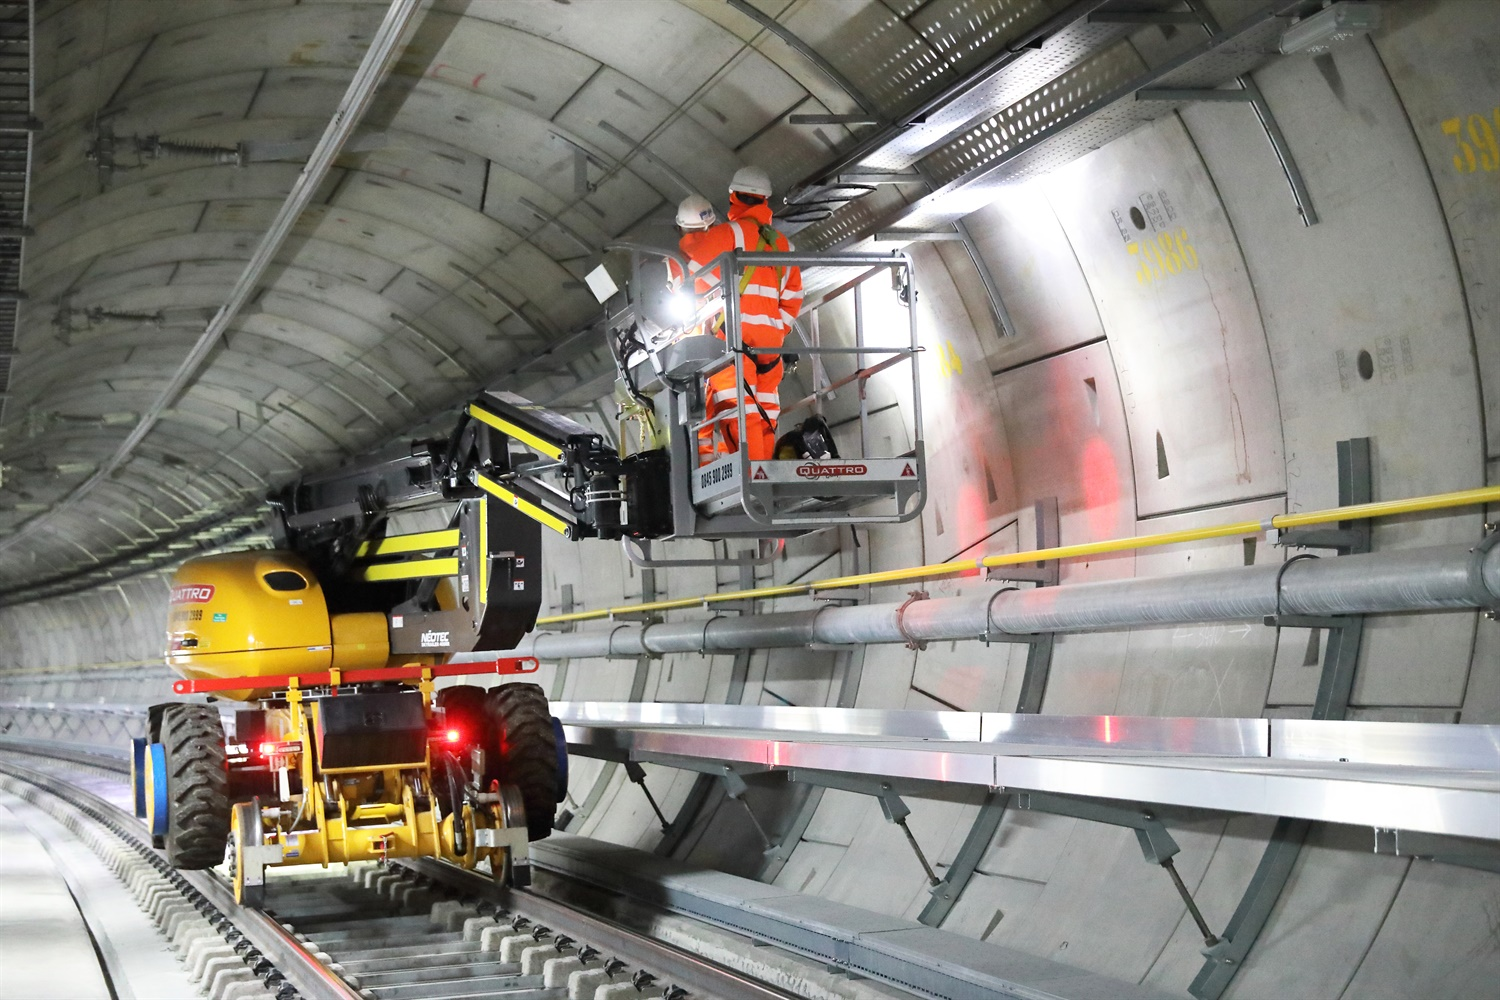 Bond Street a year behind other Crossrail stations due to tunnelling problems